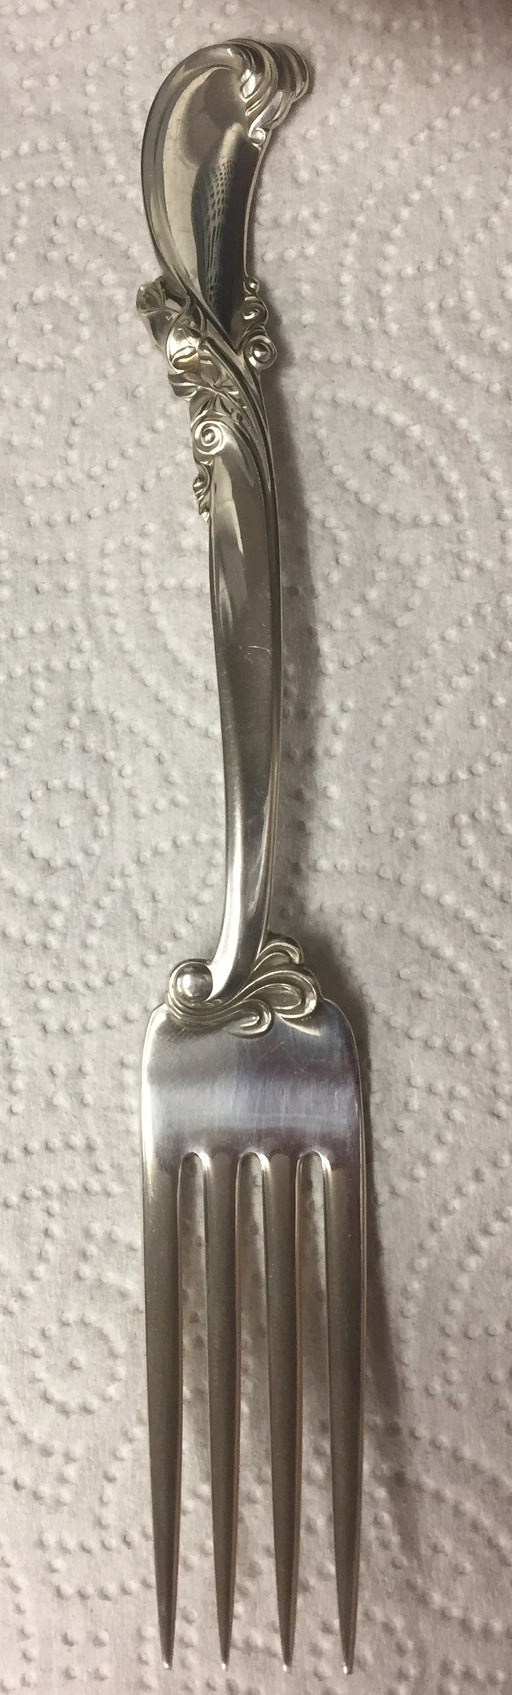 Waltz of Spring Sterling Silver Fork by Wallace 7-1/4 inch   - TvMovieCards.com